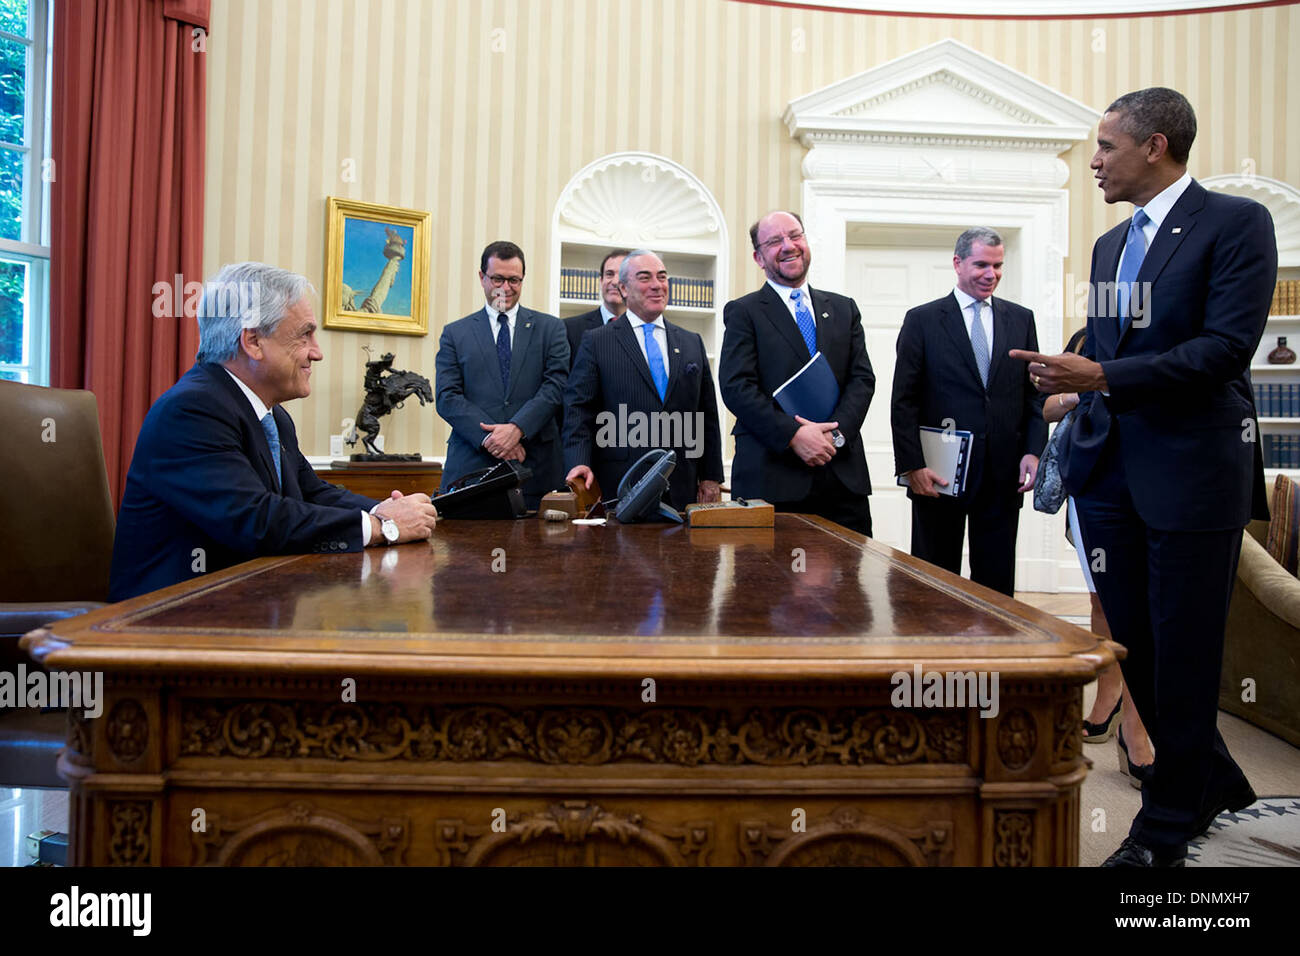 US President Barack Obama jokes with President of Chile Sebastion Pinera as he sits at the Resolute Desk in the Oval Office of the White House June 4, 2013 in Washington, DC. - Stock Image